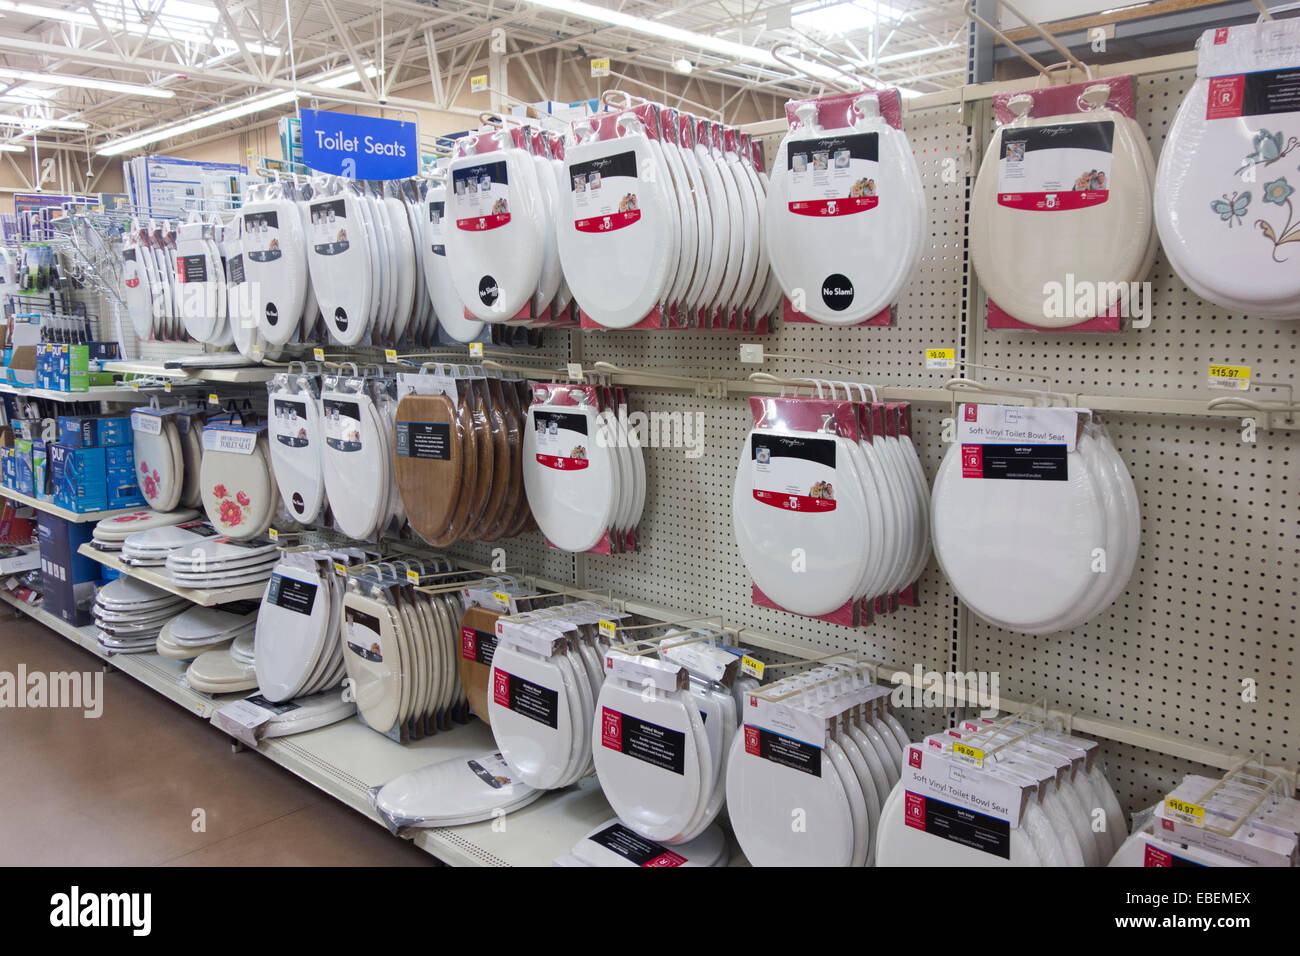 Pleasing Toilet Seat Covers In Walmart Store Stock Photo 75926114 Dailytribune Chair Design For Home Dailytribuneorg